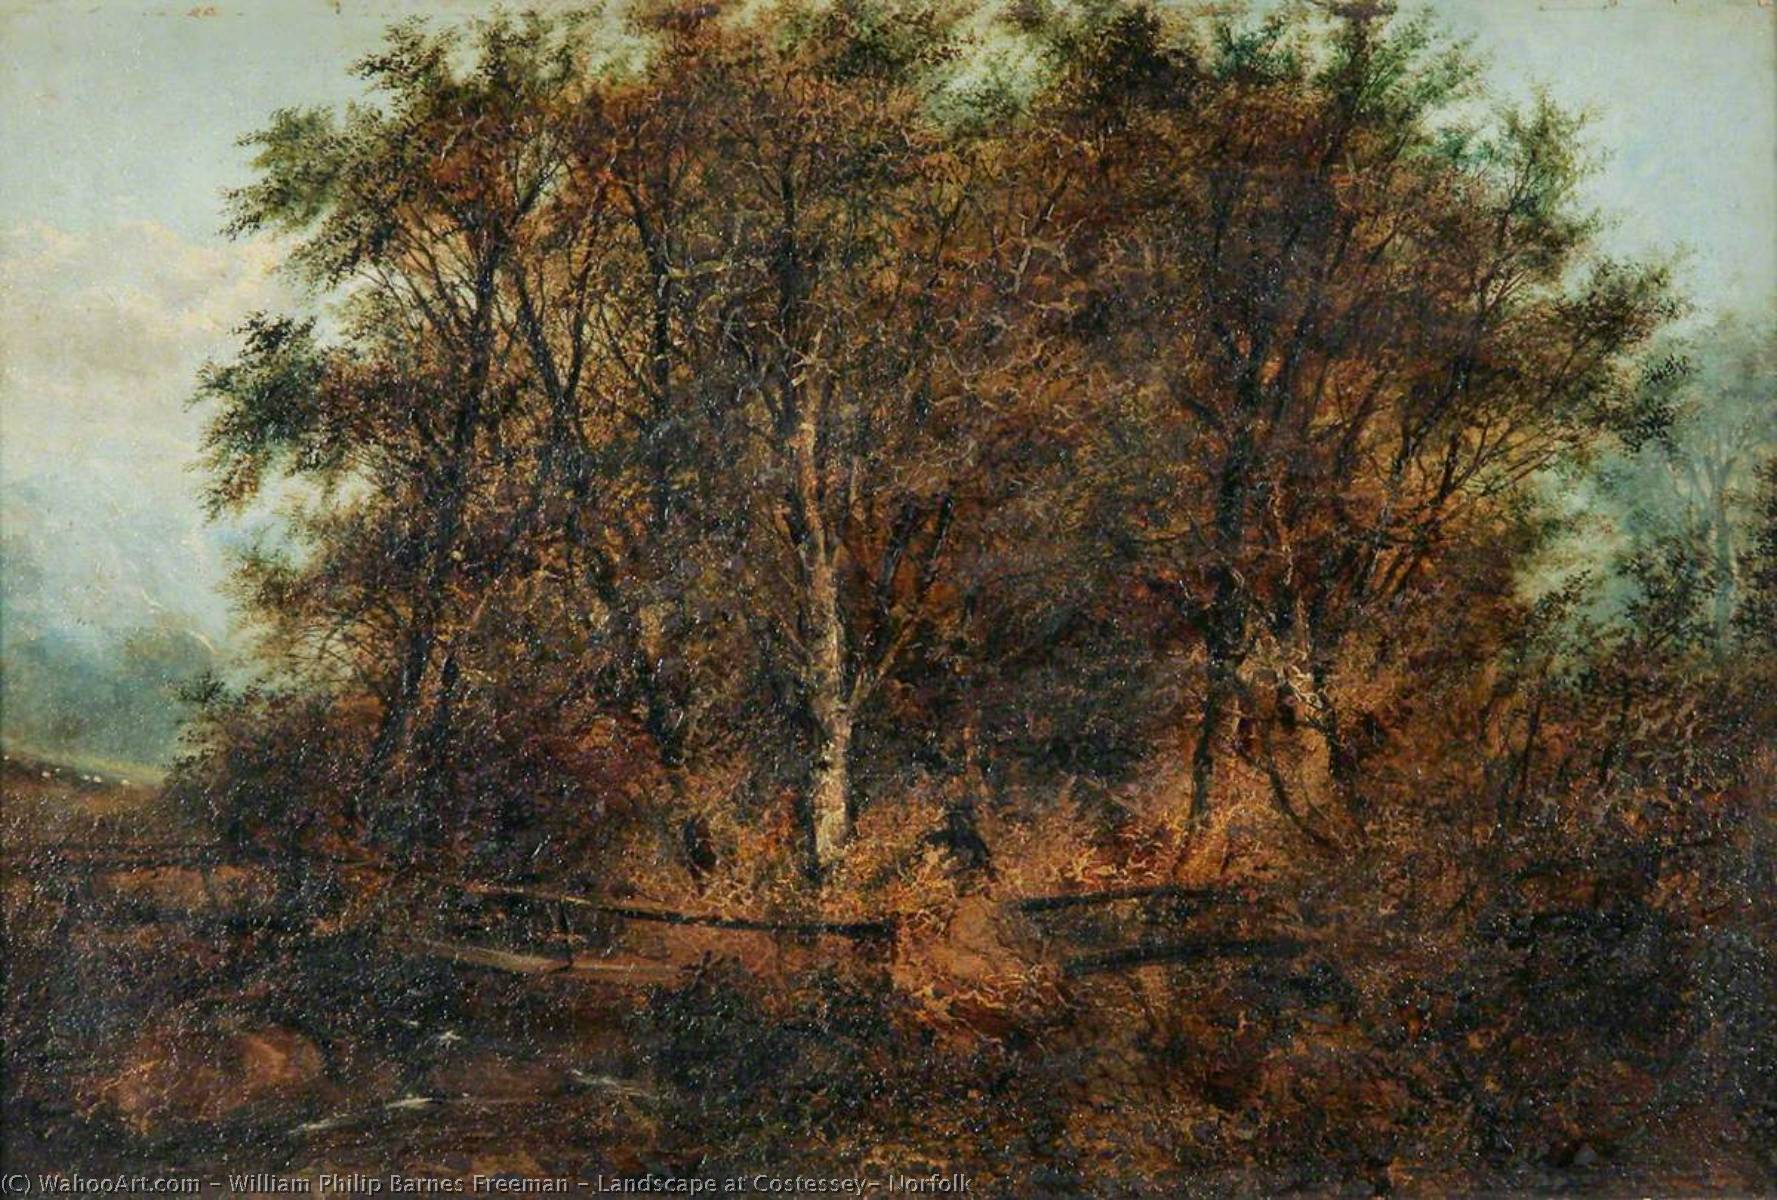 Landschaft bei Costessey , Norfolk, öl von William Philip Barnes Freeman